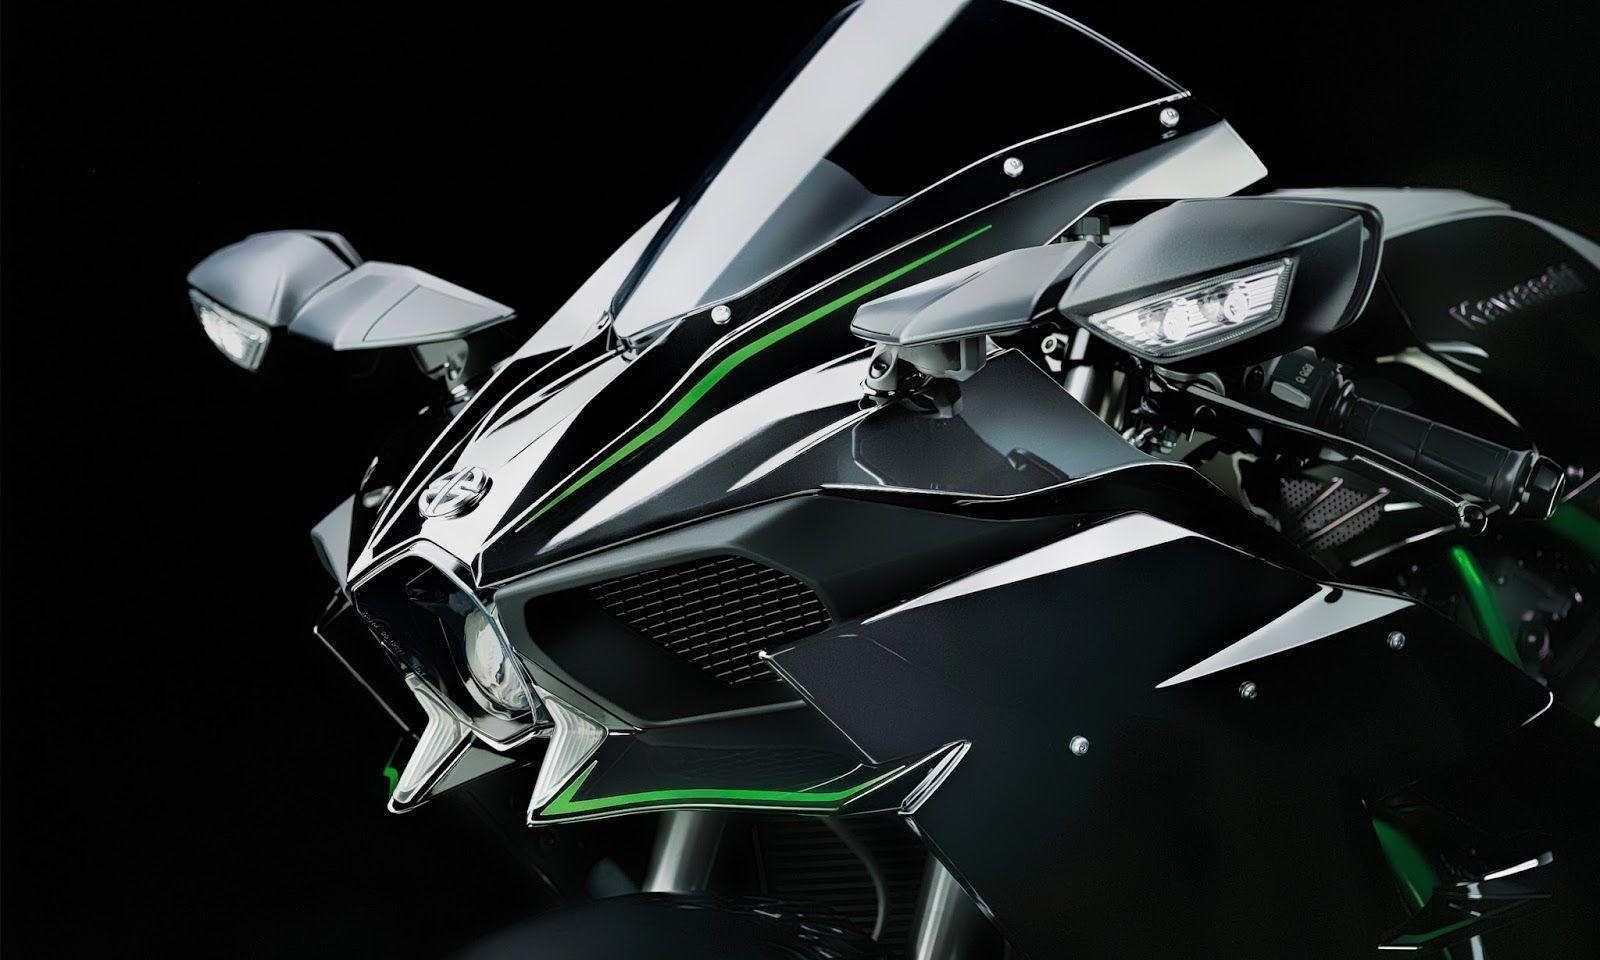 1600x960 The Ninja H2R Wallpapers